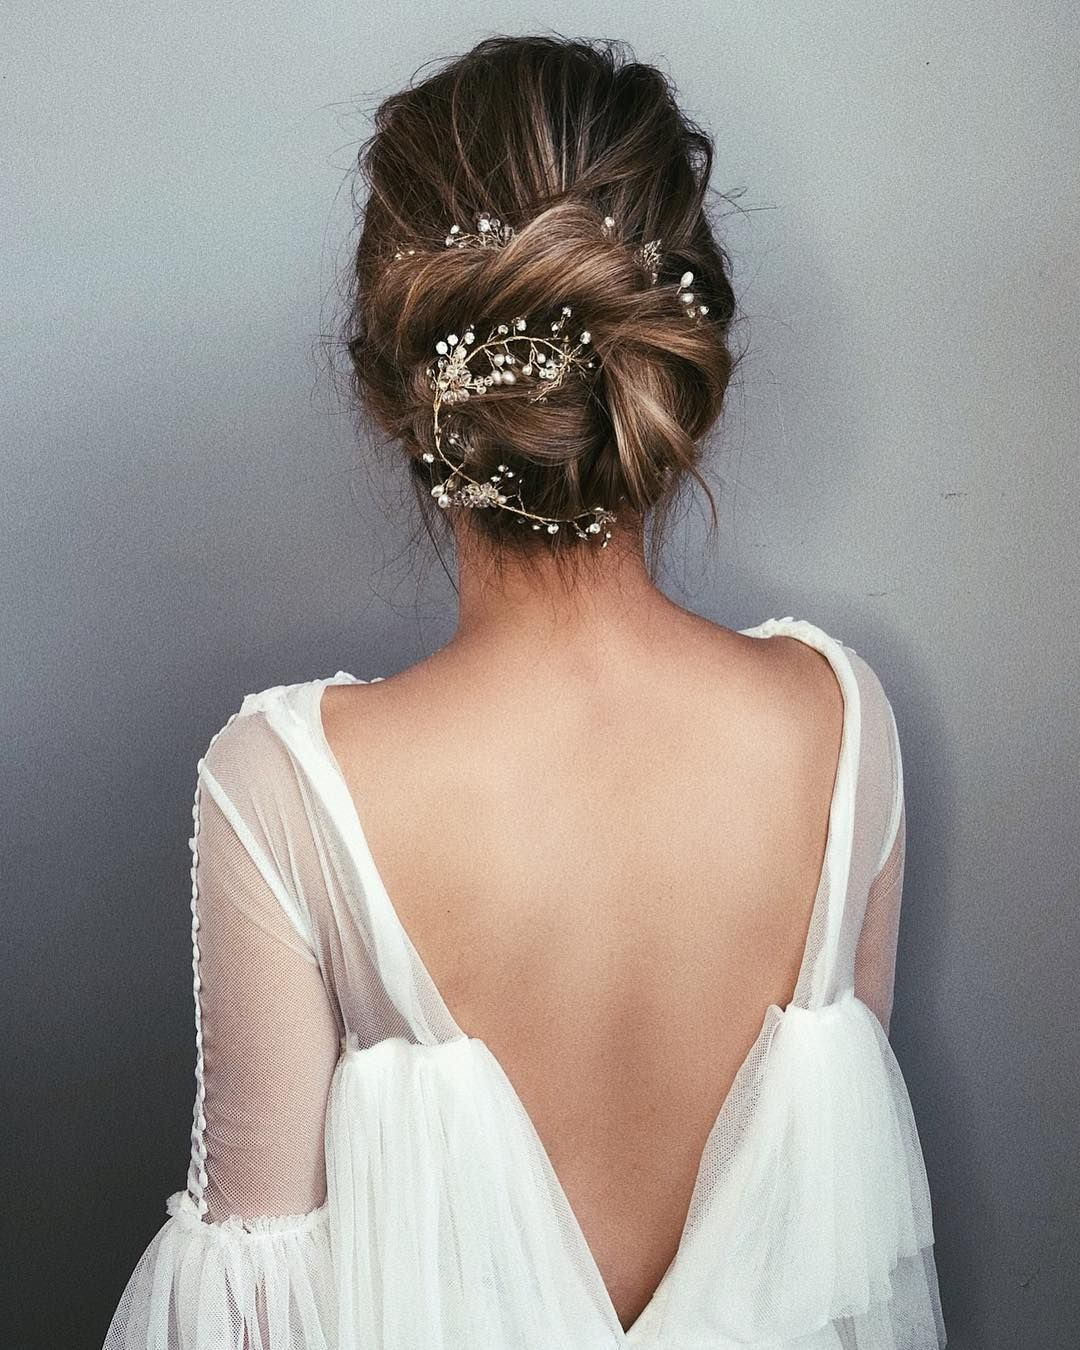 87 Fabulous Wedding Hairstyles For Every Wedding Dress Neckline Bride Hairstyles Hair Styles Dress Hairstyles